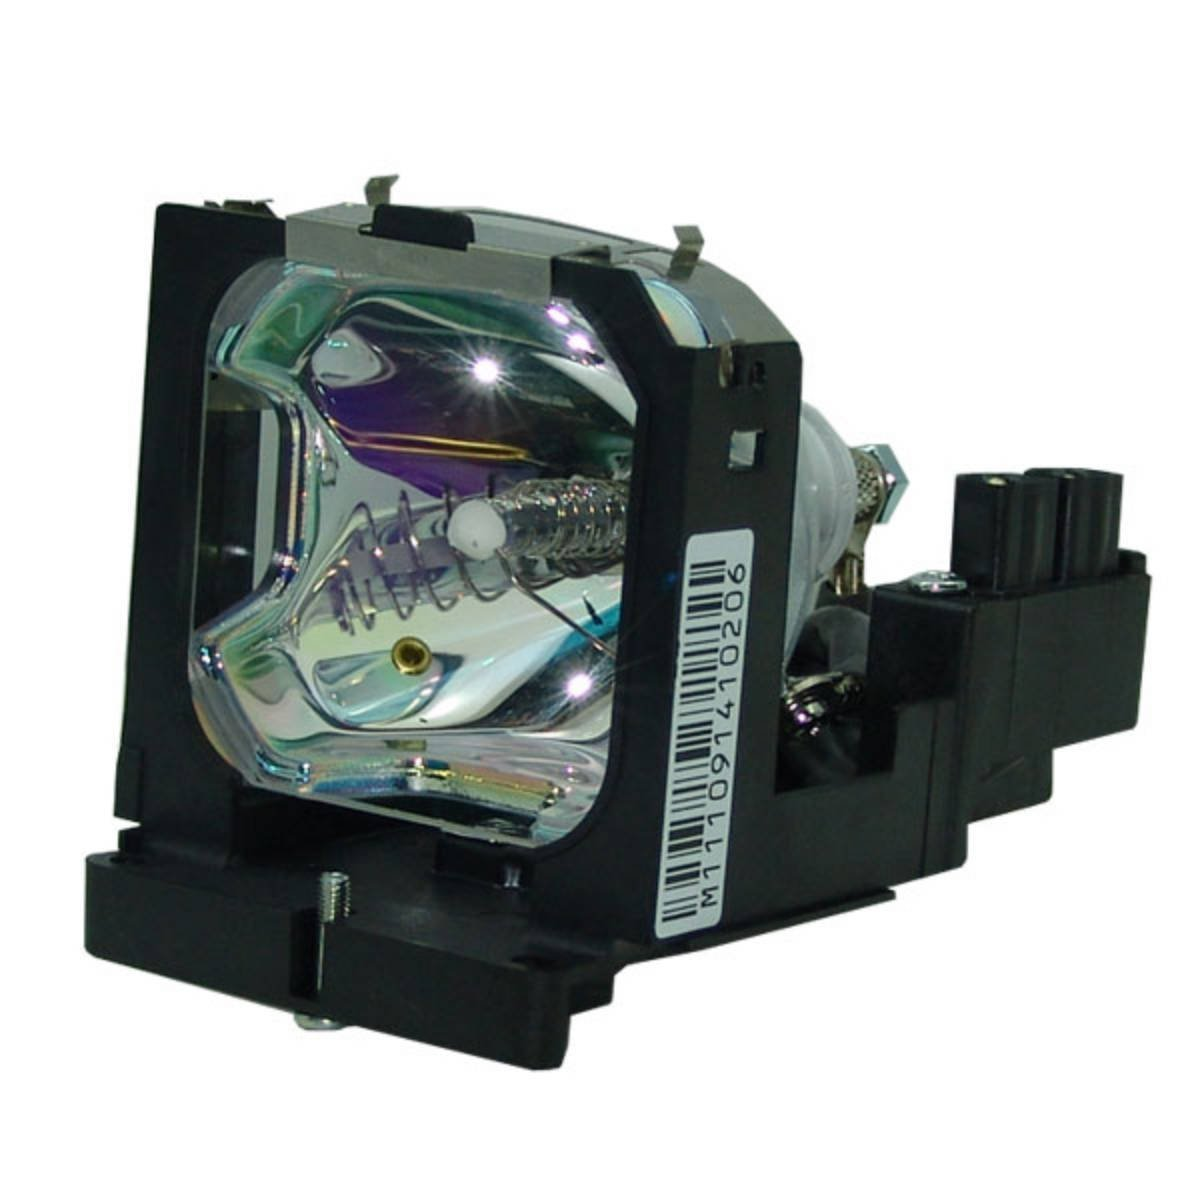 POA-LMP86 POALMP86 LMP86 610-317-5355 for SANYO PLV-Z3 PLV-Z1X Projector Lamp Bulb with housing lamp housing for sanyo 610 3252957 6103252957 projector dlp lcd bulb